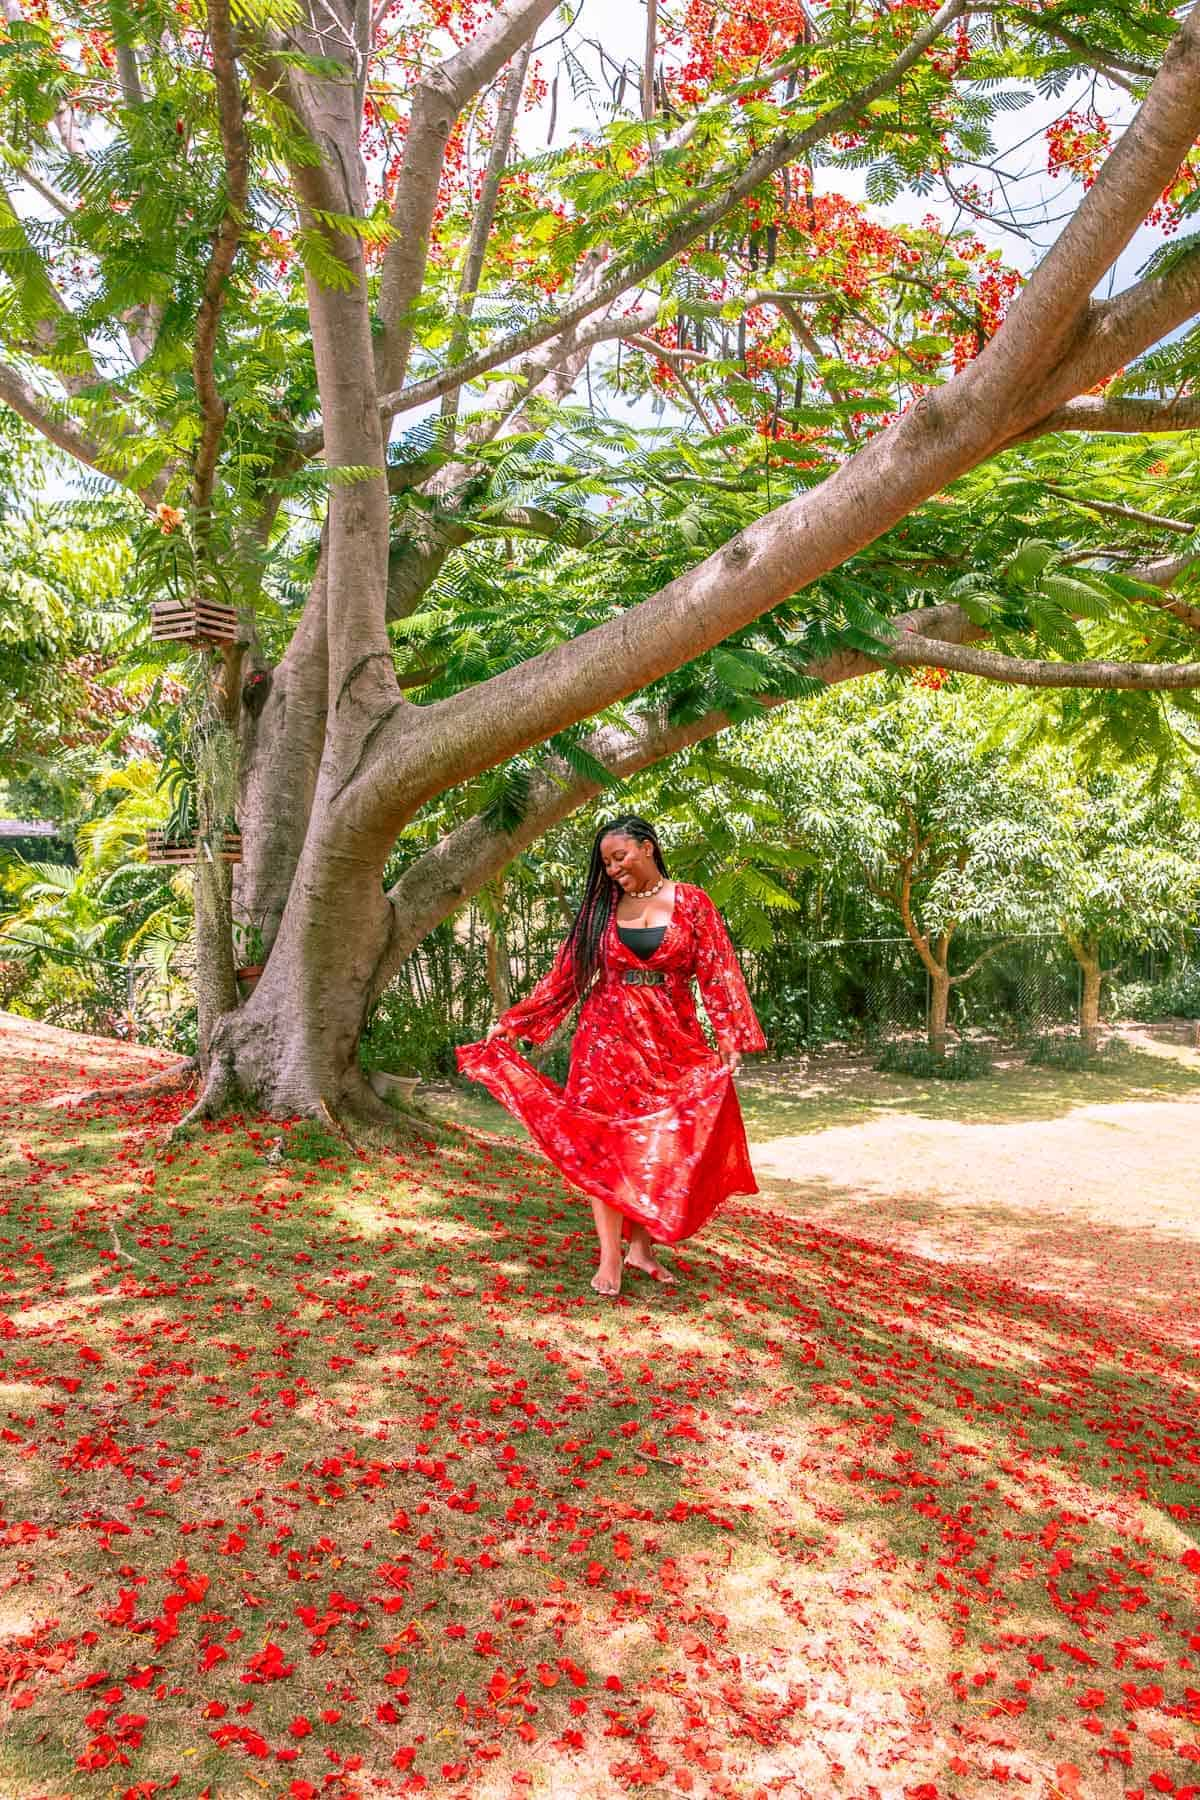 Jessica in a red dress, standing by a tree.